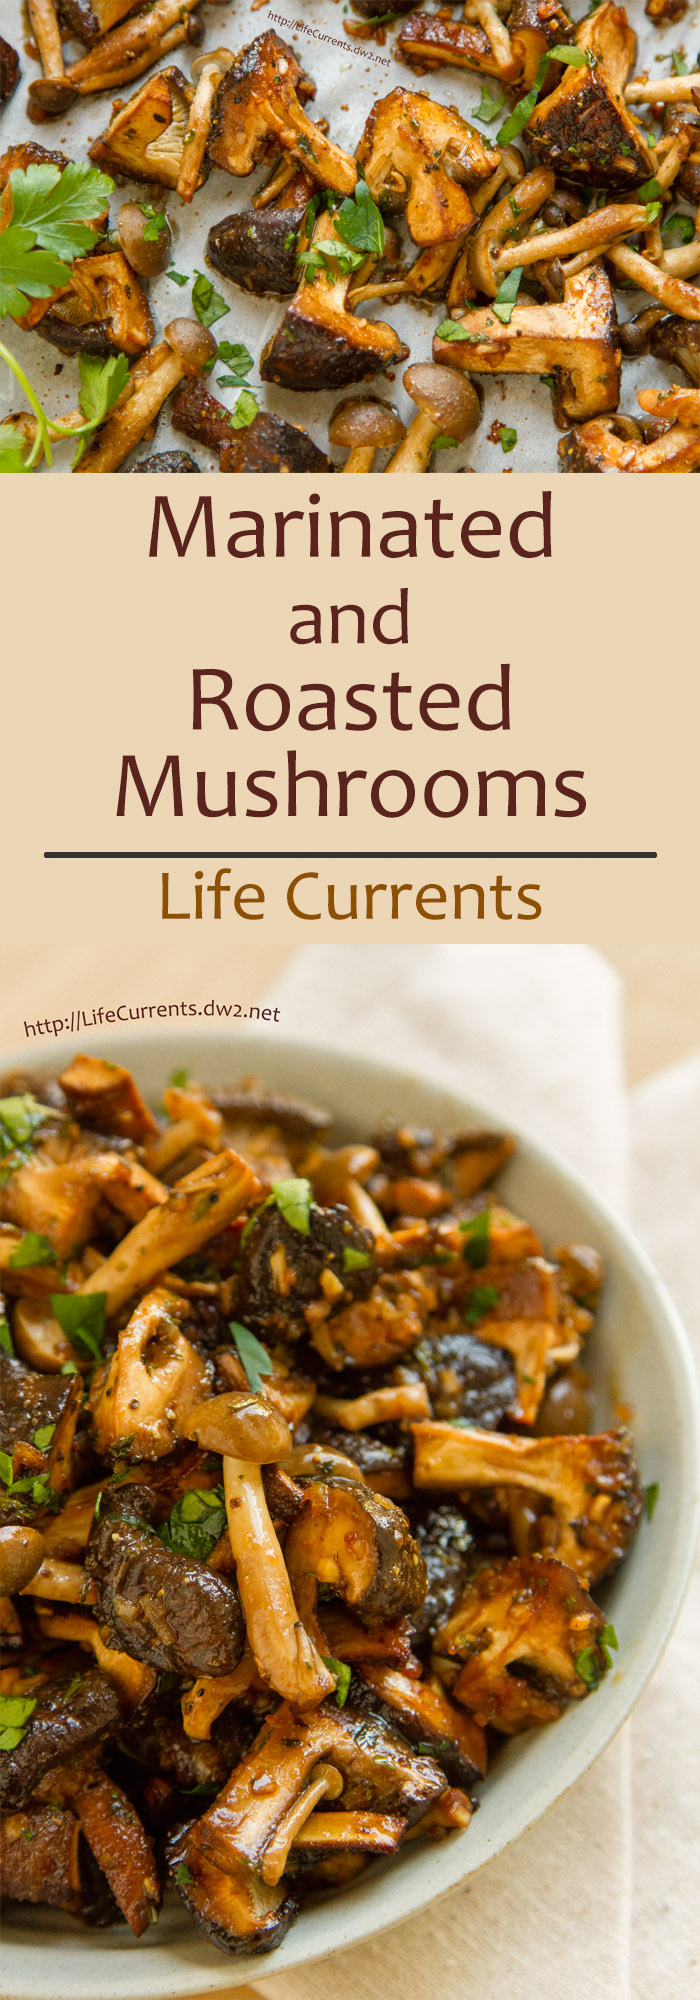 Marinated and Roasted Mushrooms are so easy to make and super delicious! Perfect for a holiday dinner! by Life Currents